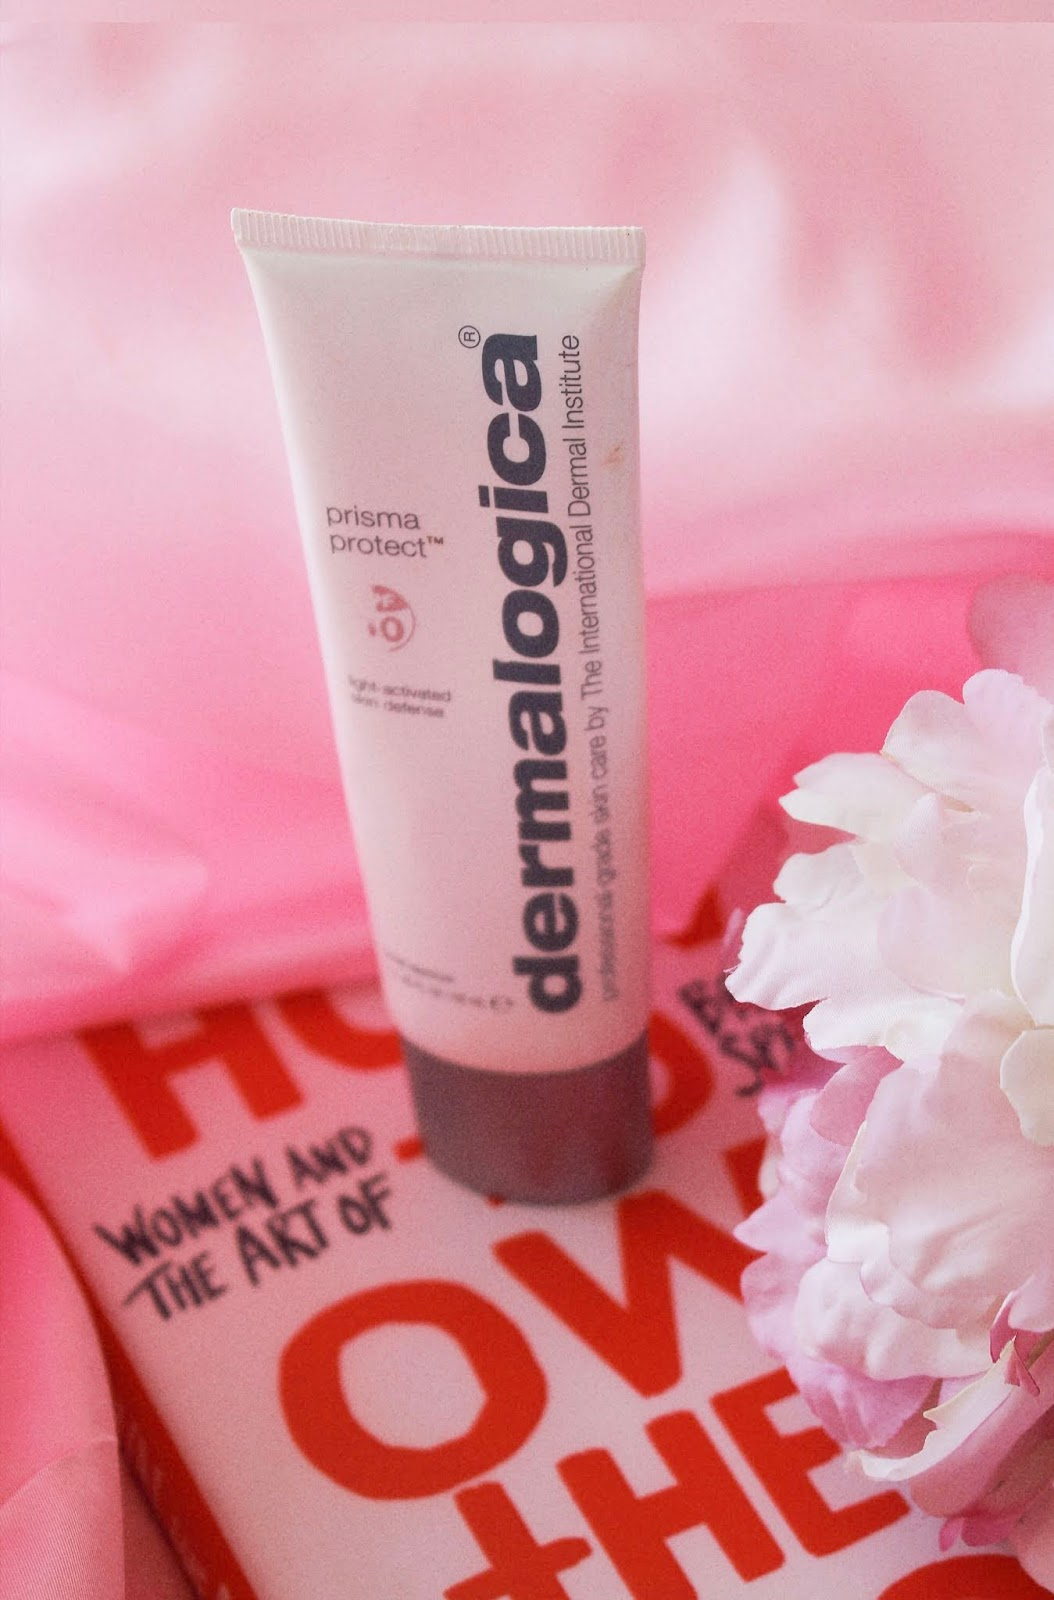 dermalogica prism protect review, spf in skincare, dermalogica review, dermalogica skinfulencer, spf, pollution, is spf as bad as pollution, products to help stop pollution, beauty products to defend against pollution, spf review, spf 30